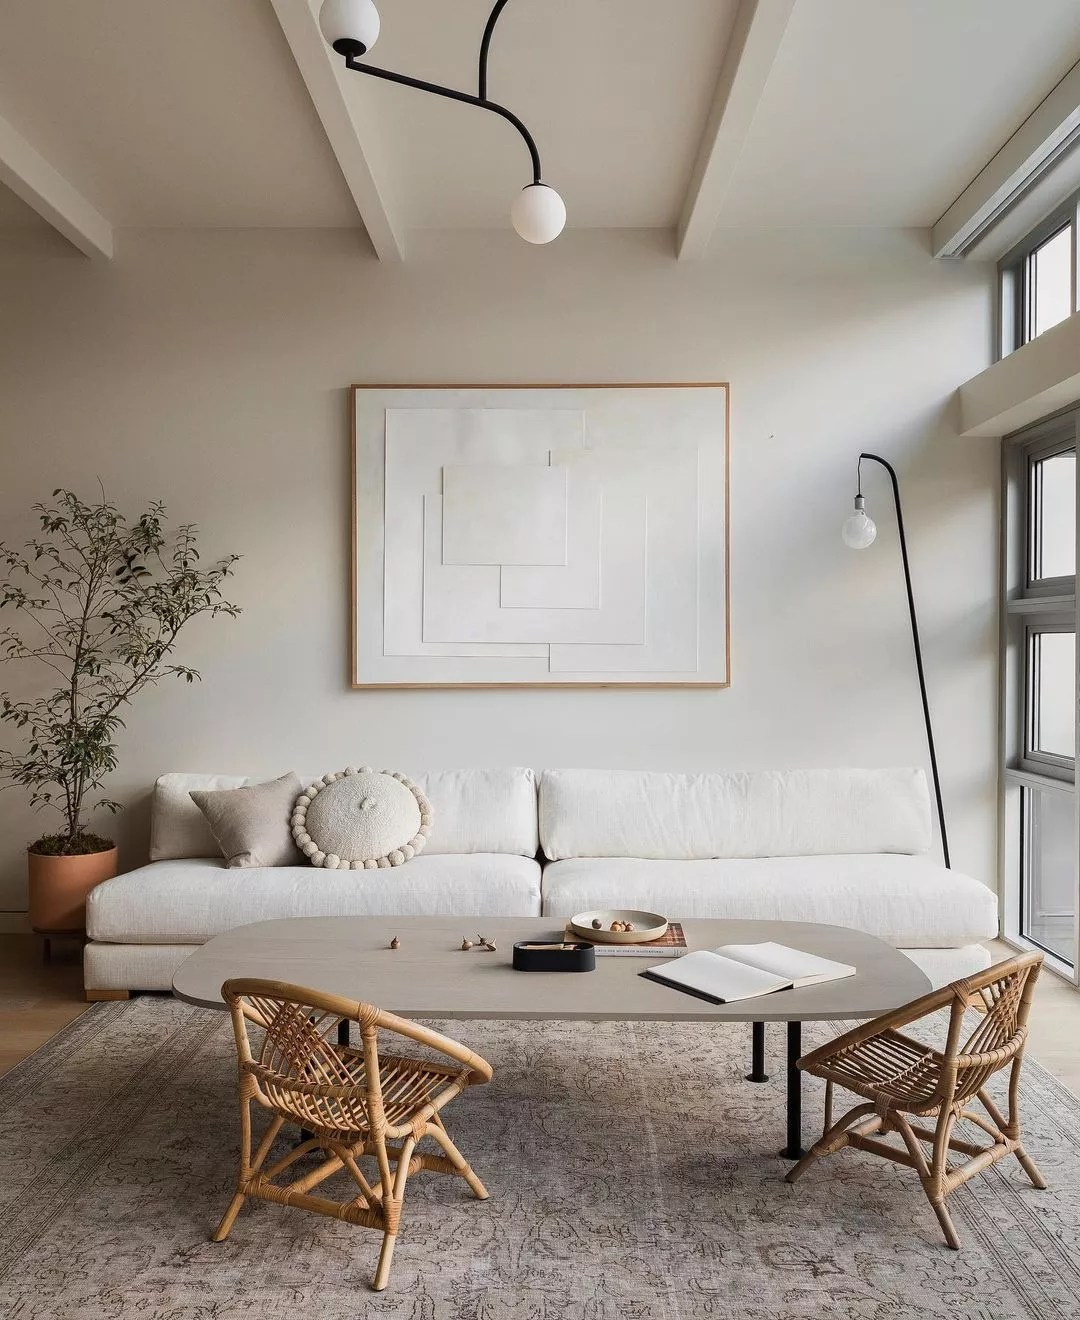 Japandi styled living room with wooden scandi chairs and soft, white sofa. Photo by Instagram user @haris.kenjar